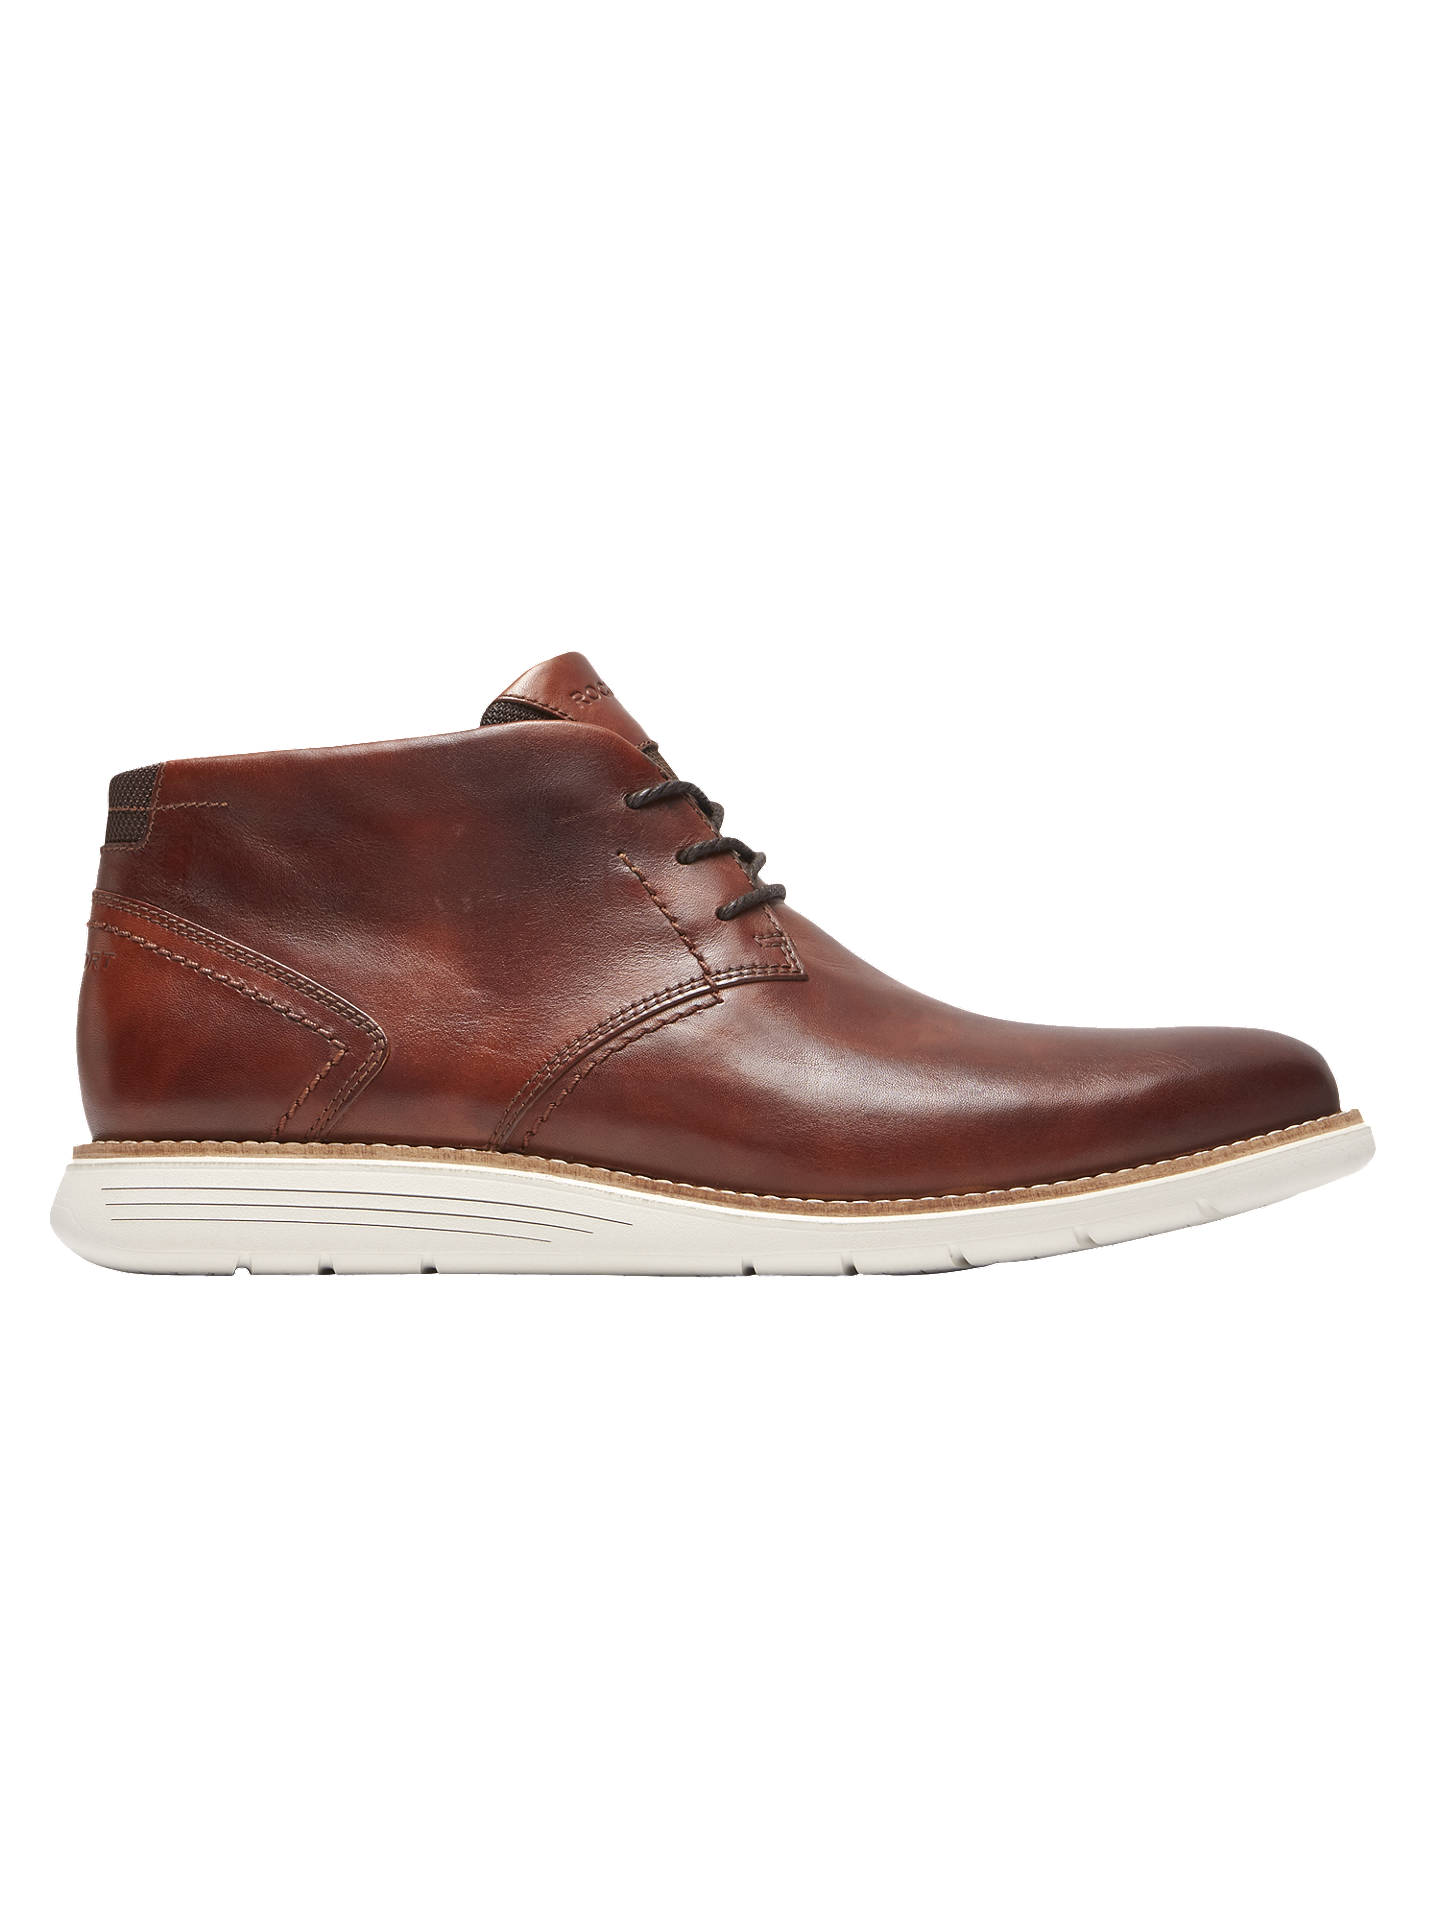 ed1f15c48d4b Buy Rockport Total Motion Sports Chukka Boot